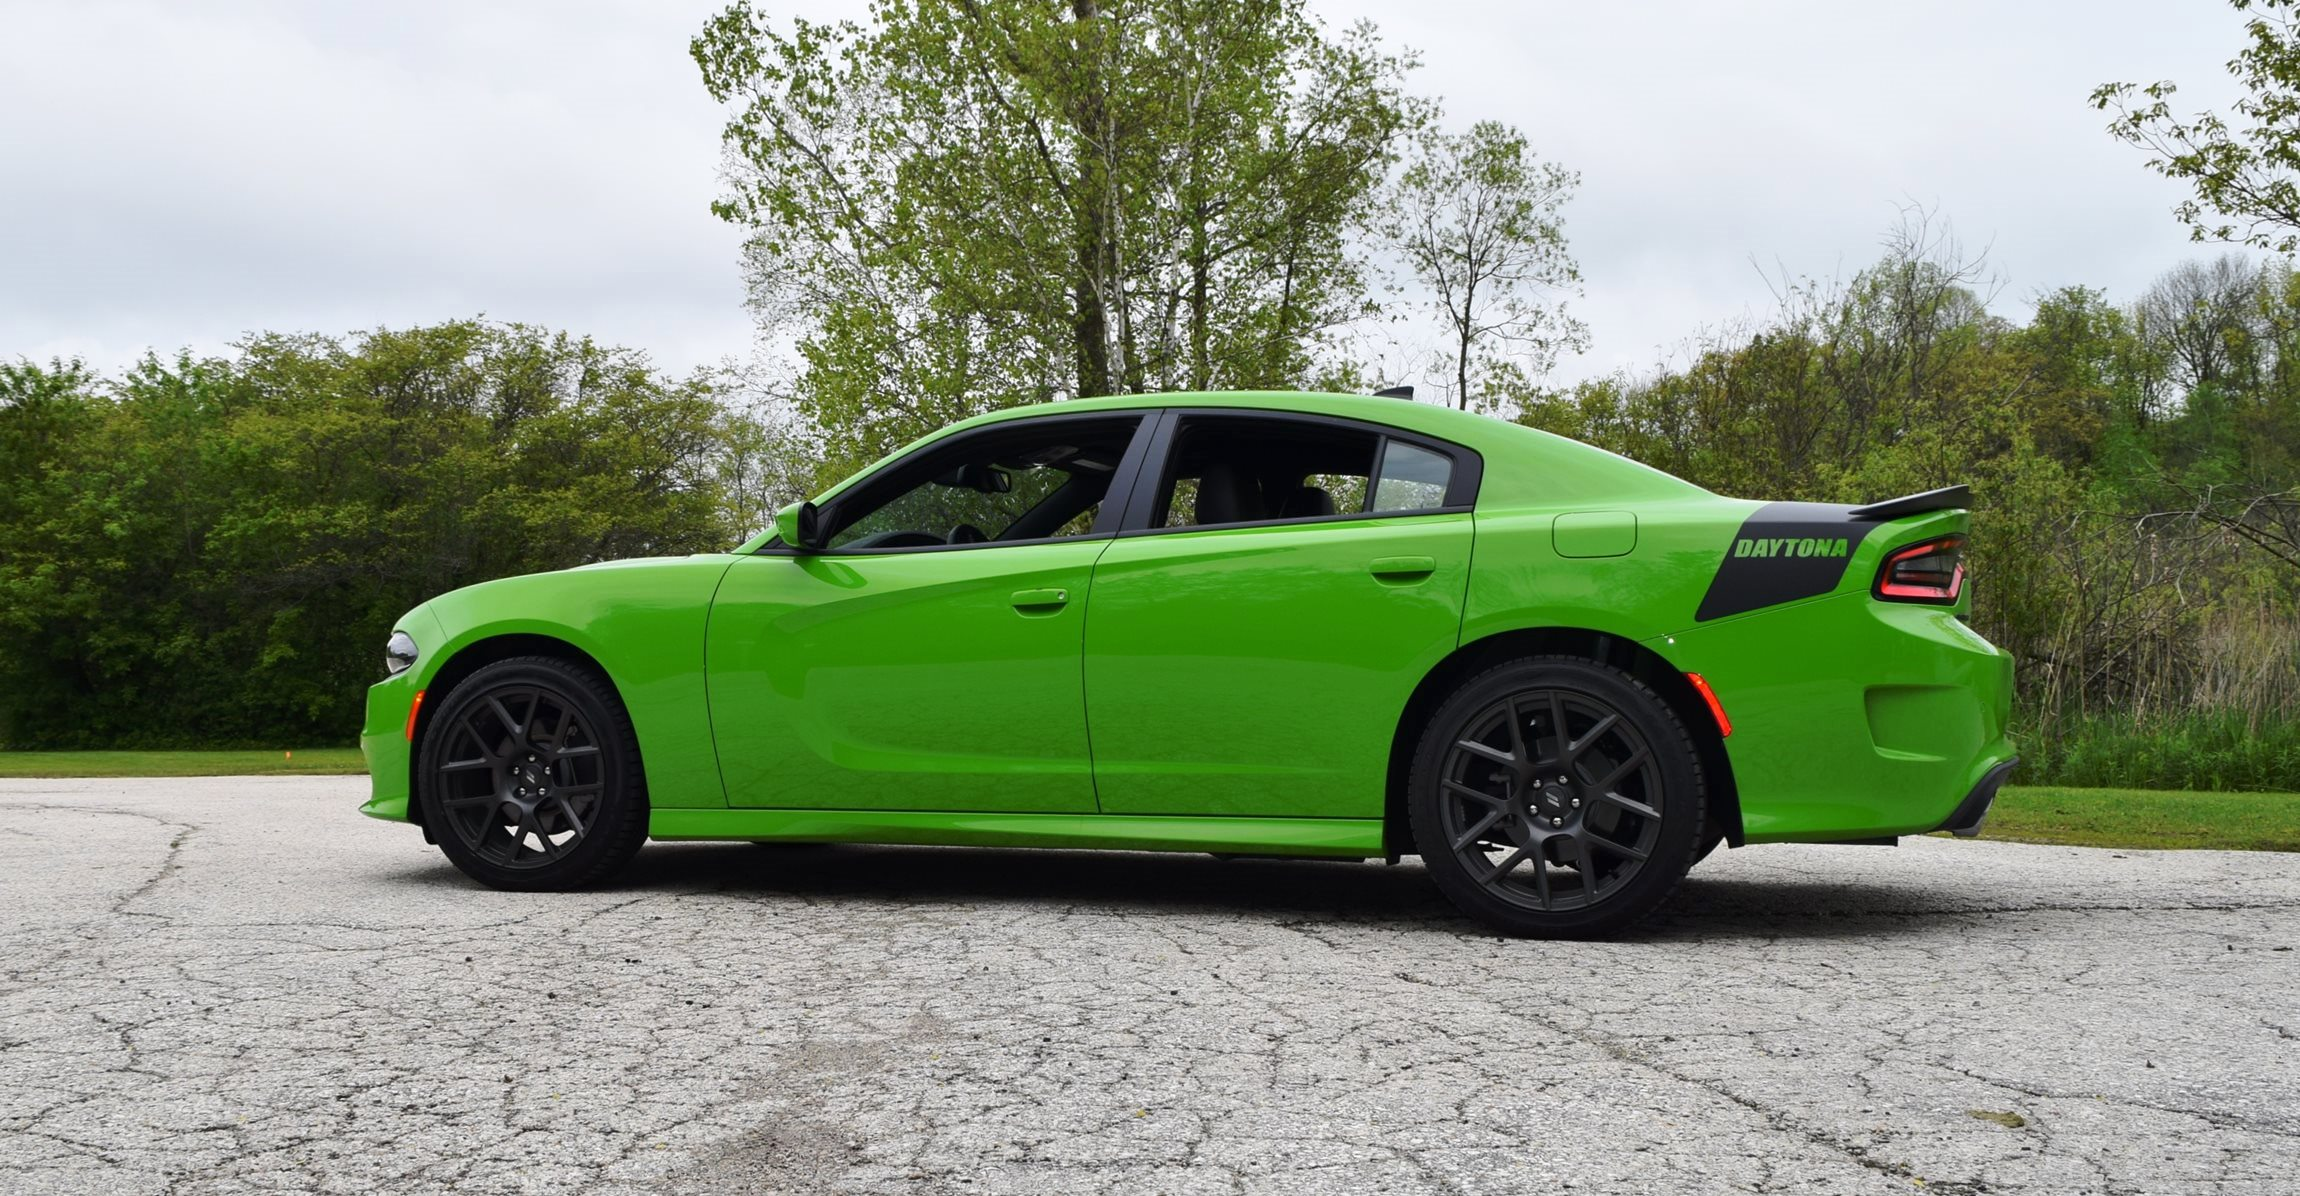 2017 Dodge Charger DAYTONA 29